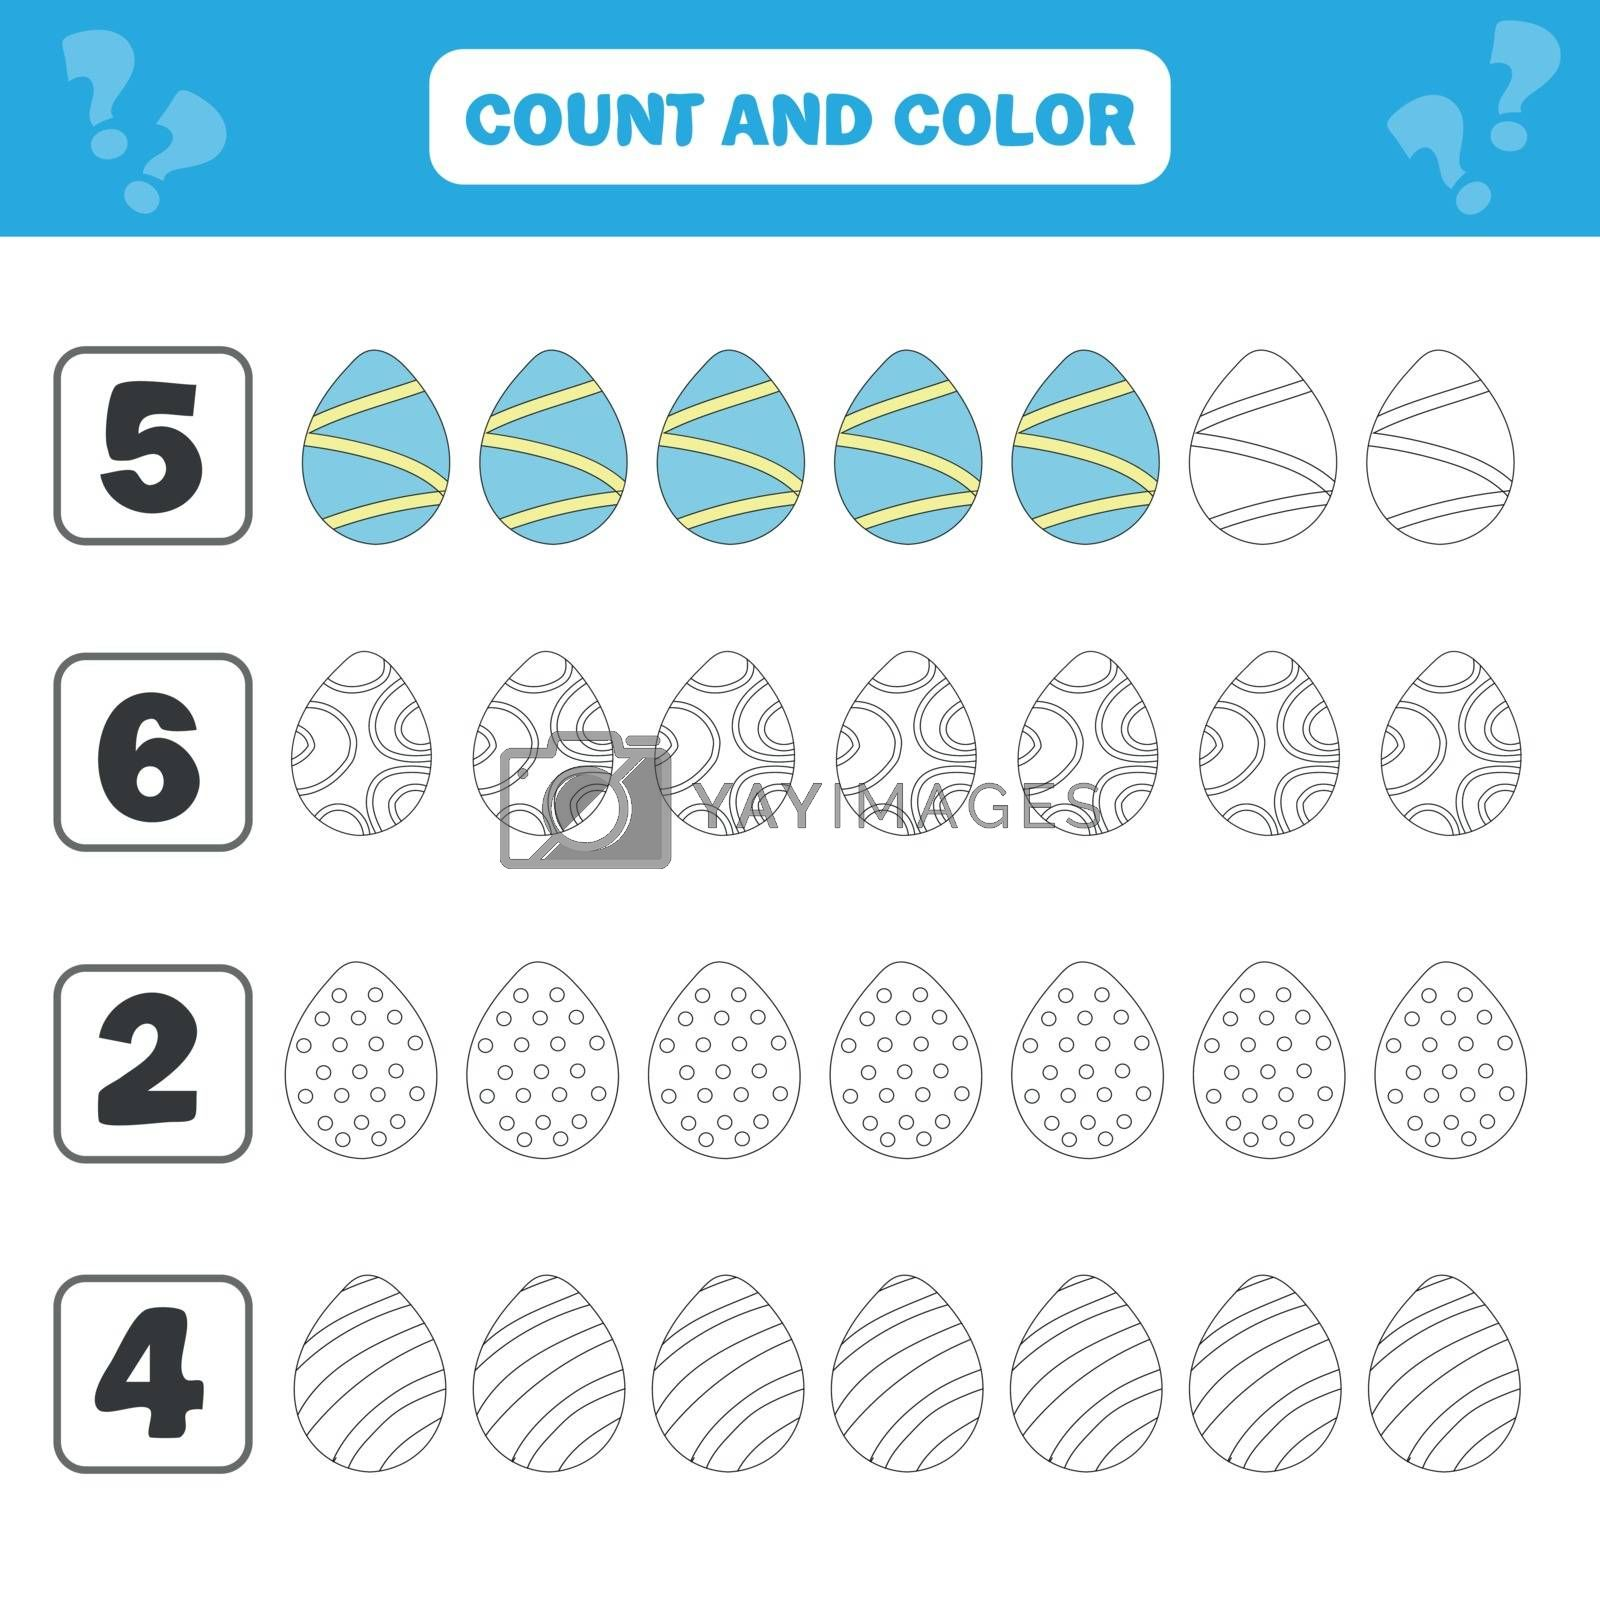 Game for preschool children. Count and color Easter eggs in the picture. Simple flat isolated vector illustration